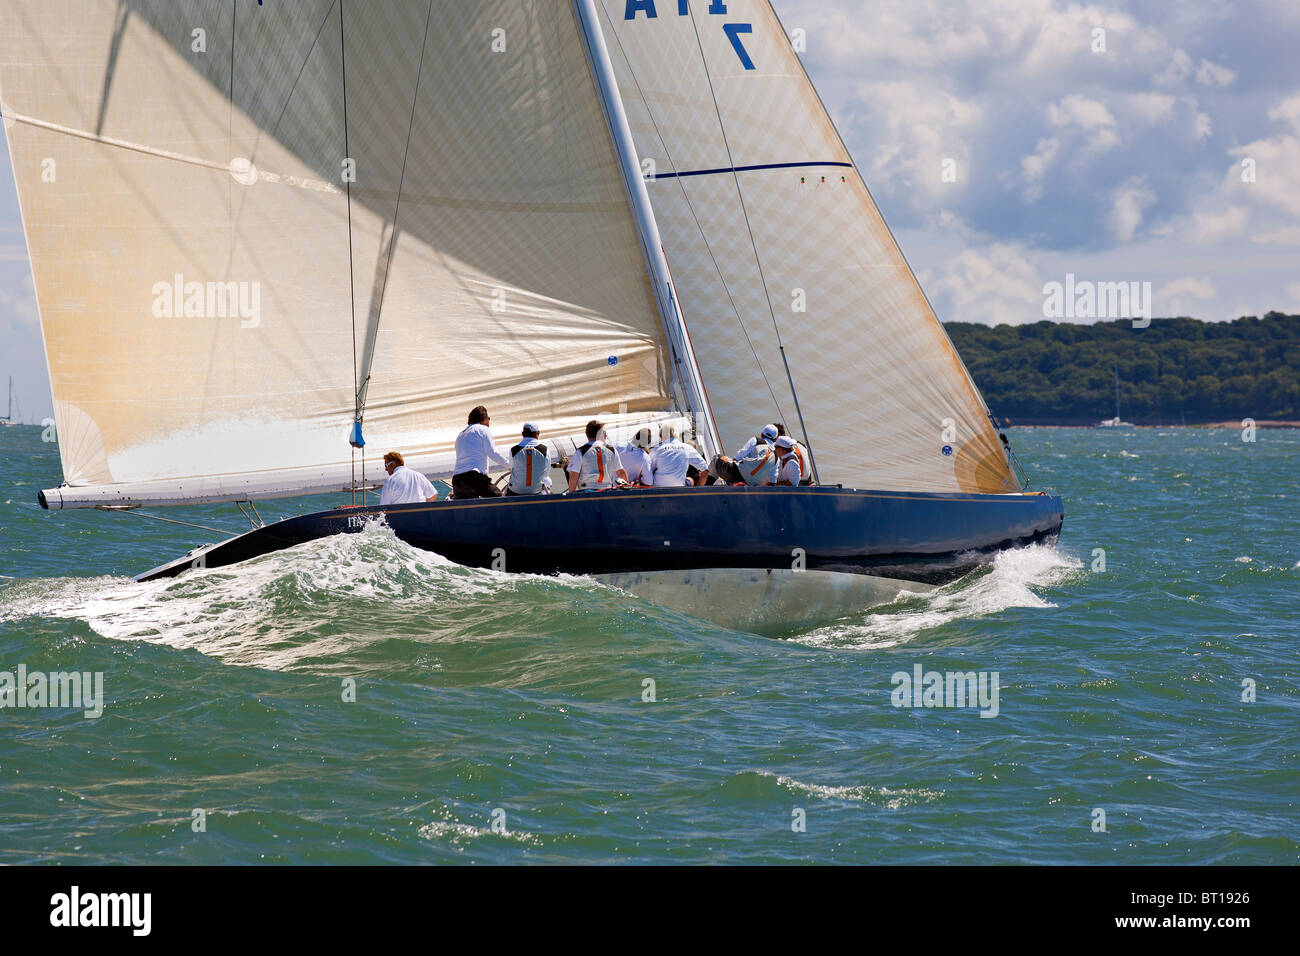 modern racing yacht speeding through the water with co-operation and teamwork of the crew - Stock Image